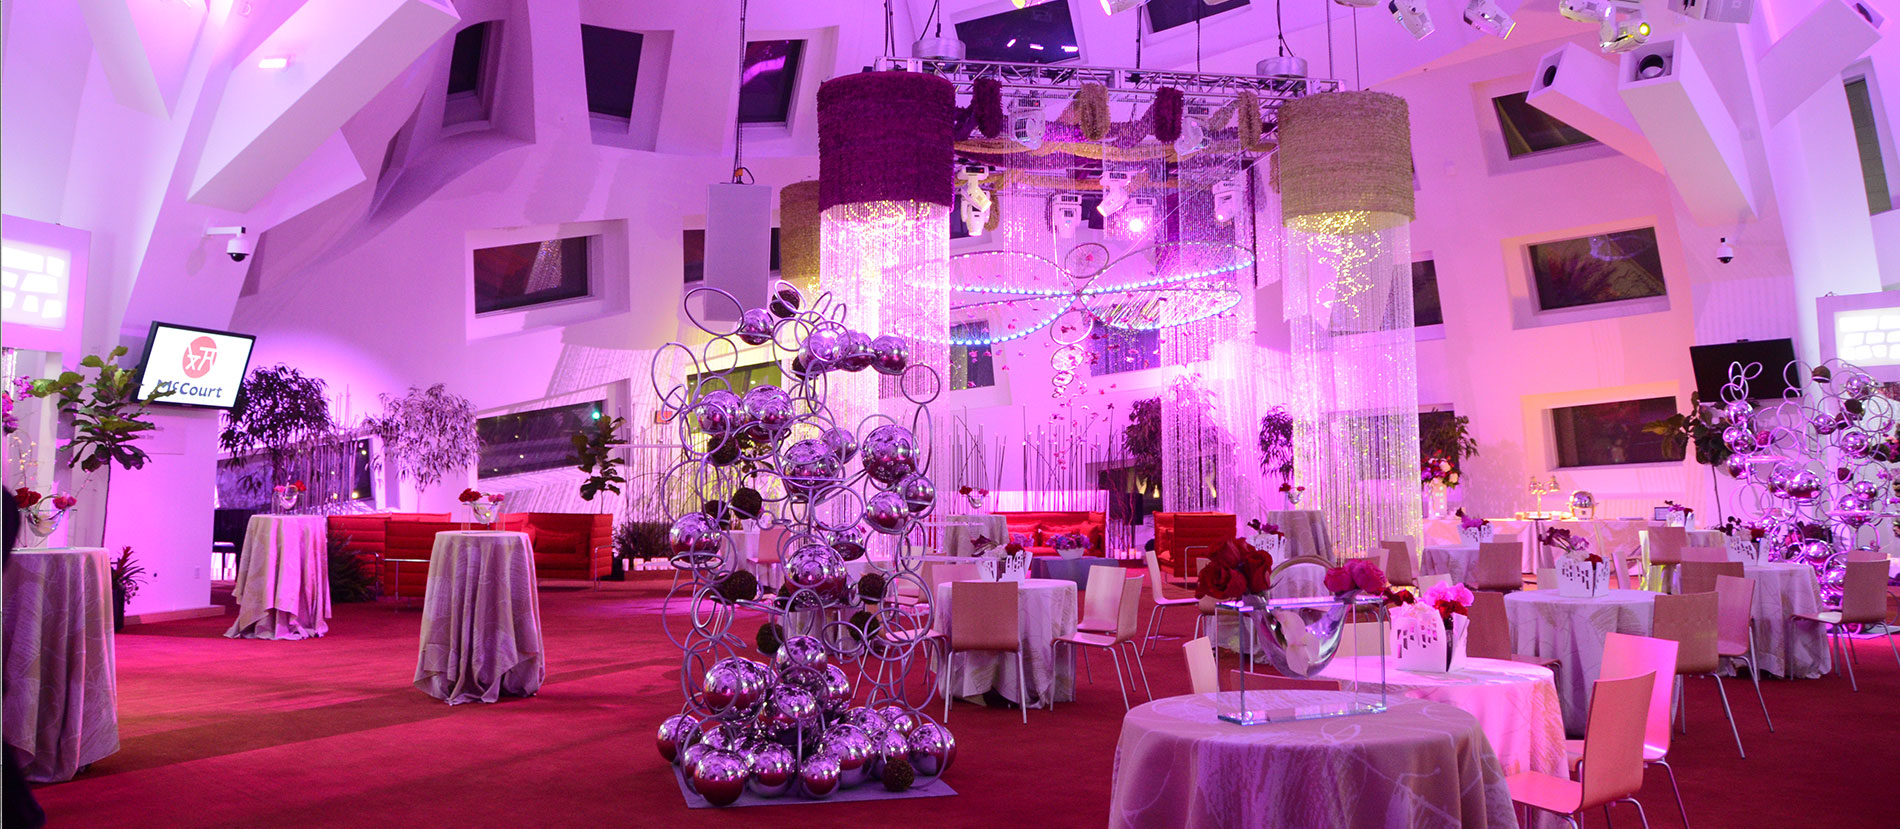 Banquet Halls In Las Vegas For Rent : Keep memory alive las vegas event center and wedding hall